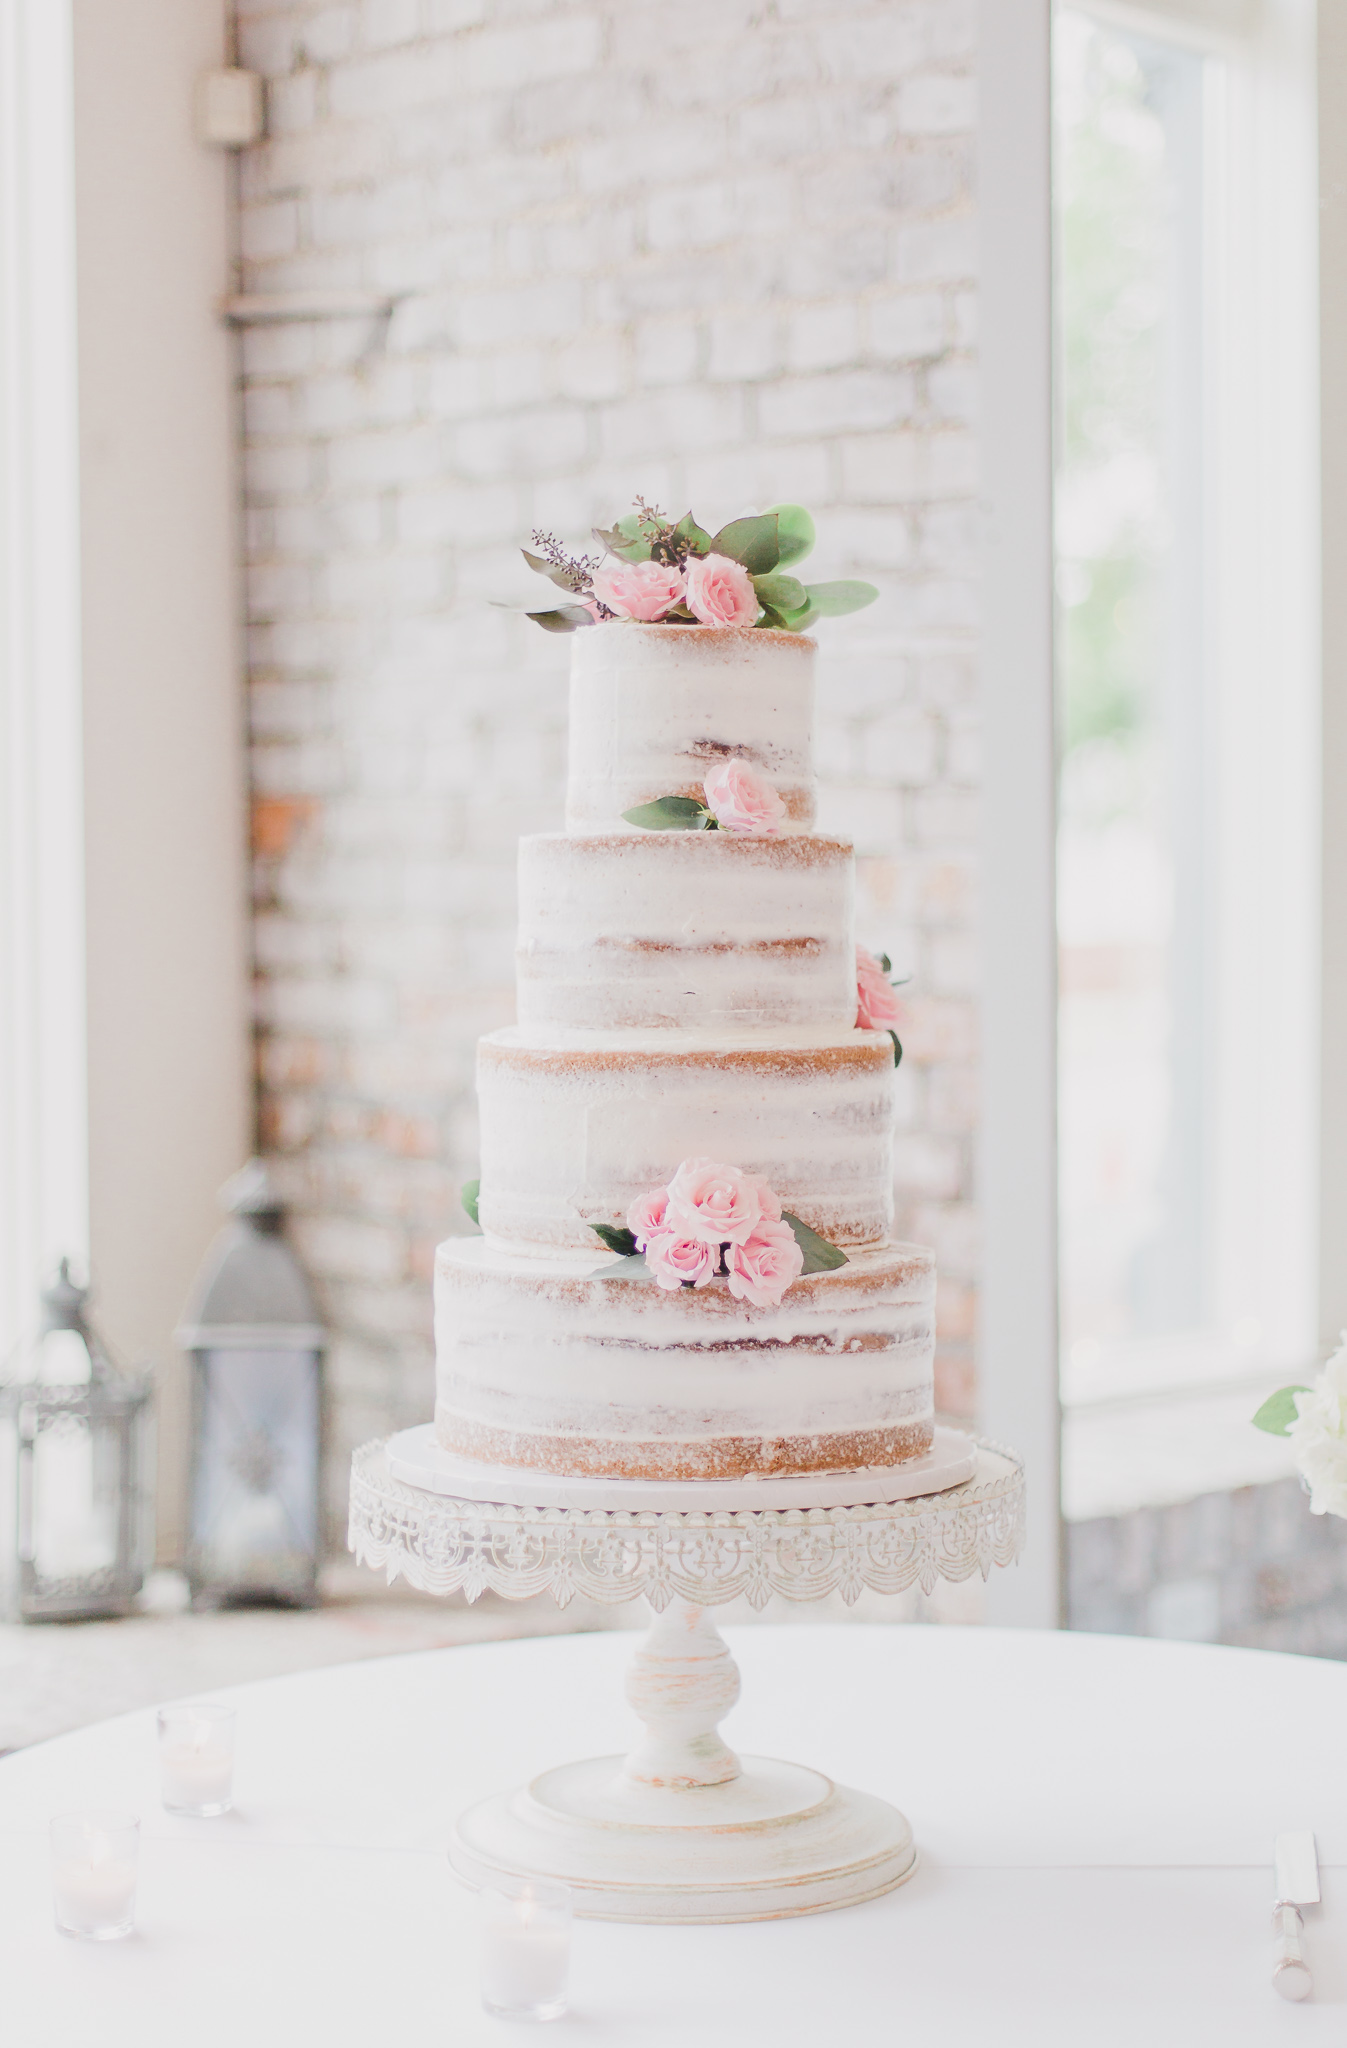 4 layer naked cake with pink roses and succulents in 5eleven venue in Pensacola, Florida